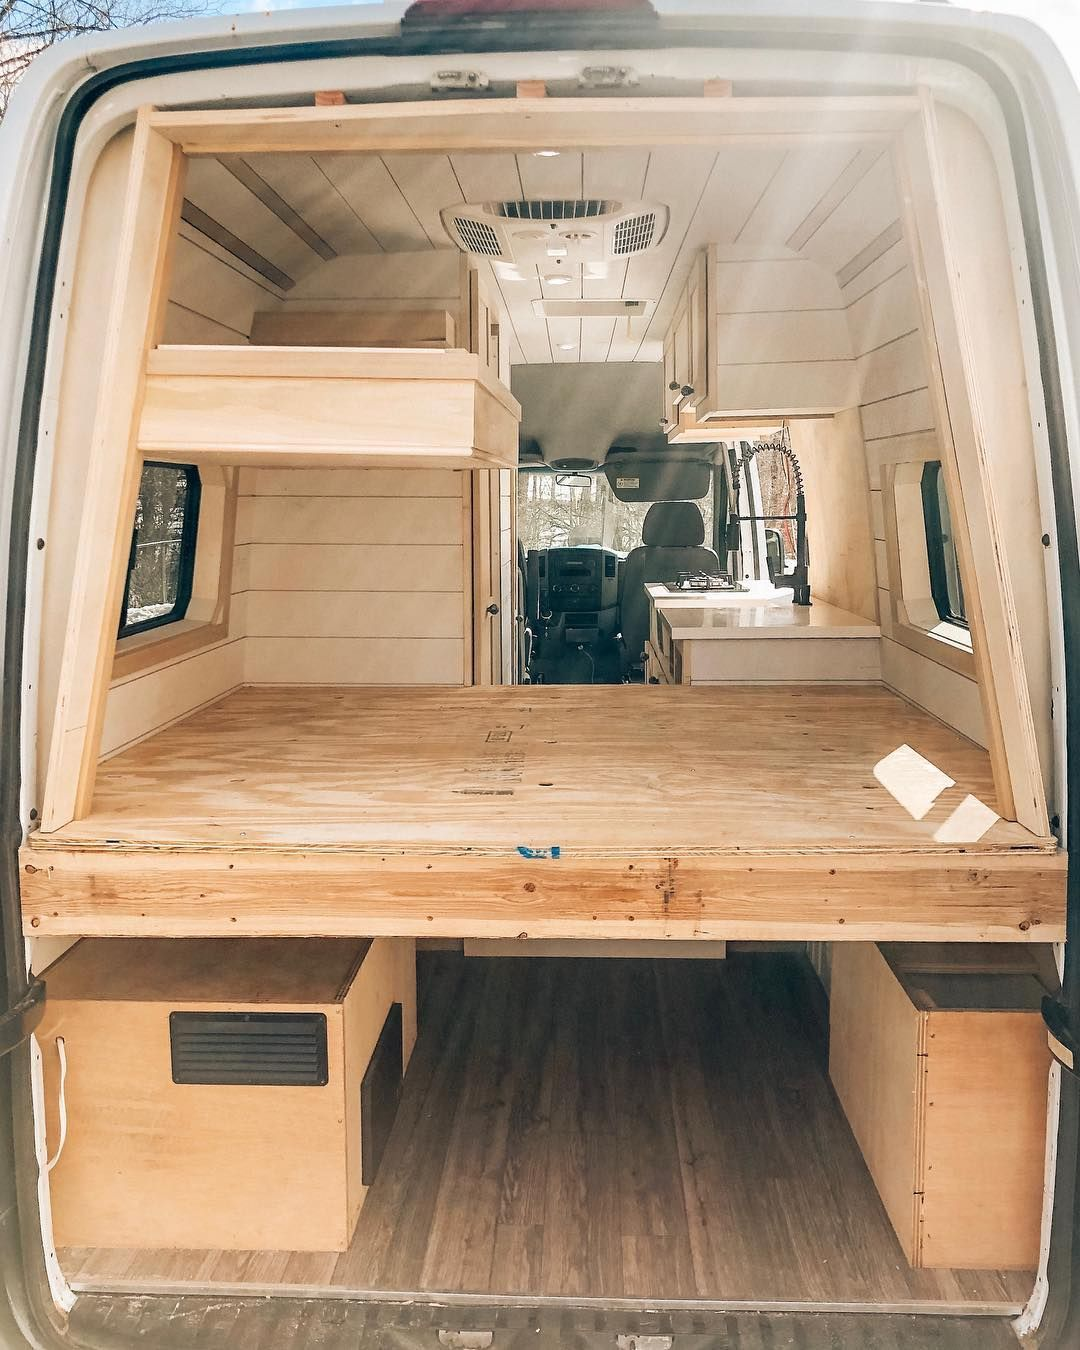 "Photo of Van Life| Jake + Gianna + Luna on Instagram: ""Community. I can not say enough about this #vanlife community. From the first moment Gianna and I began researching this lifestyle,…"""